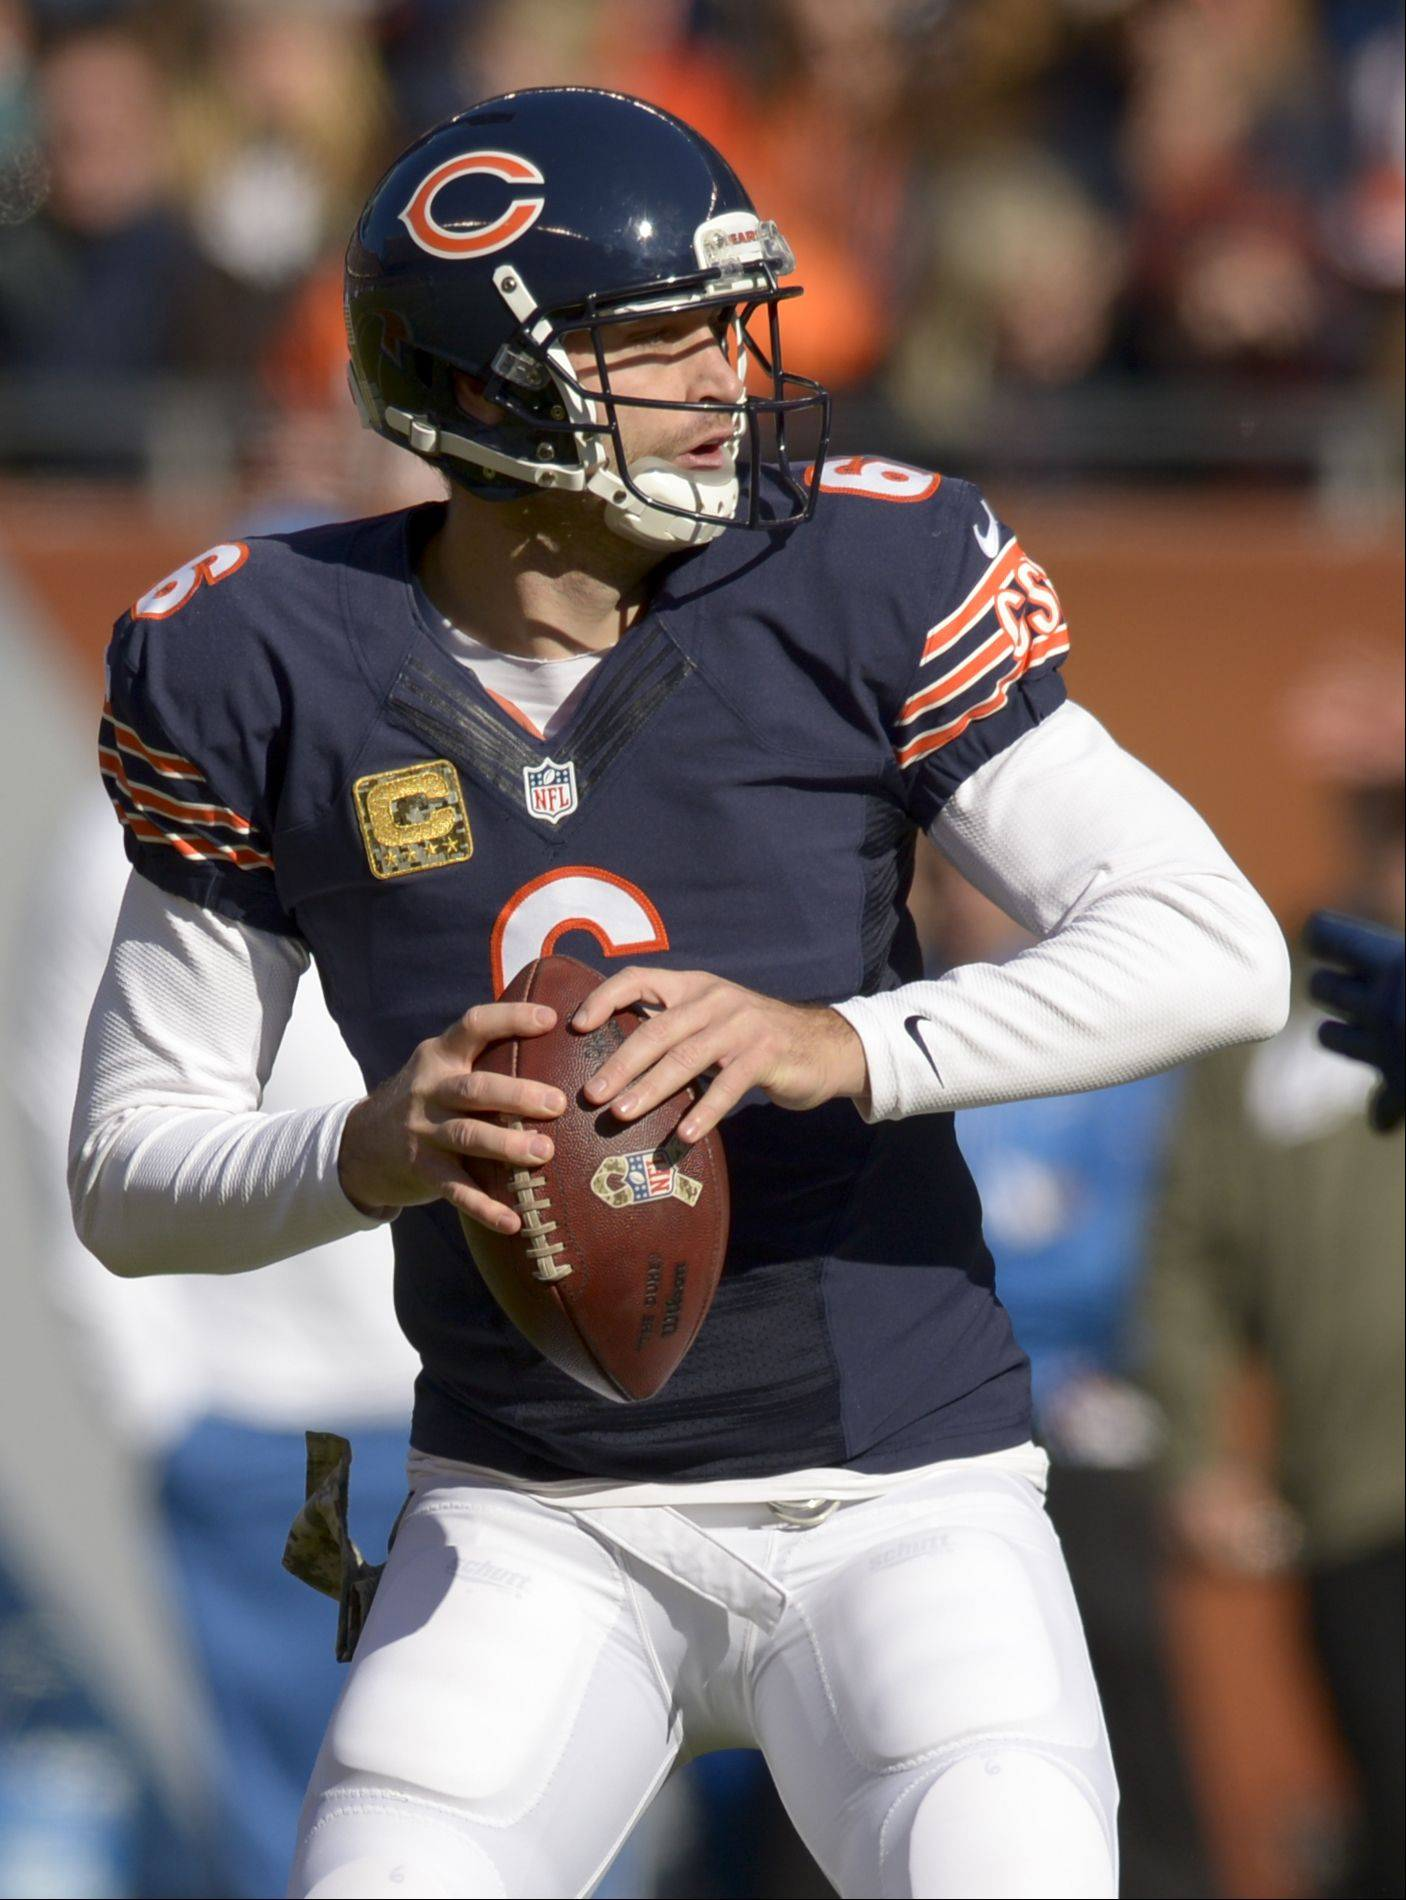 Chicago Bears quarterback Jay Cutler looks for an open man during the first half of the Bears 21-19 loss to the Detroit Lions at Soldier Field, Sunday.